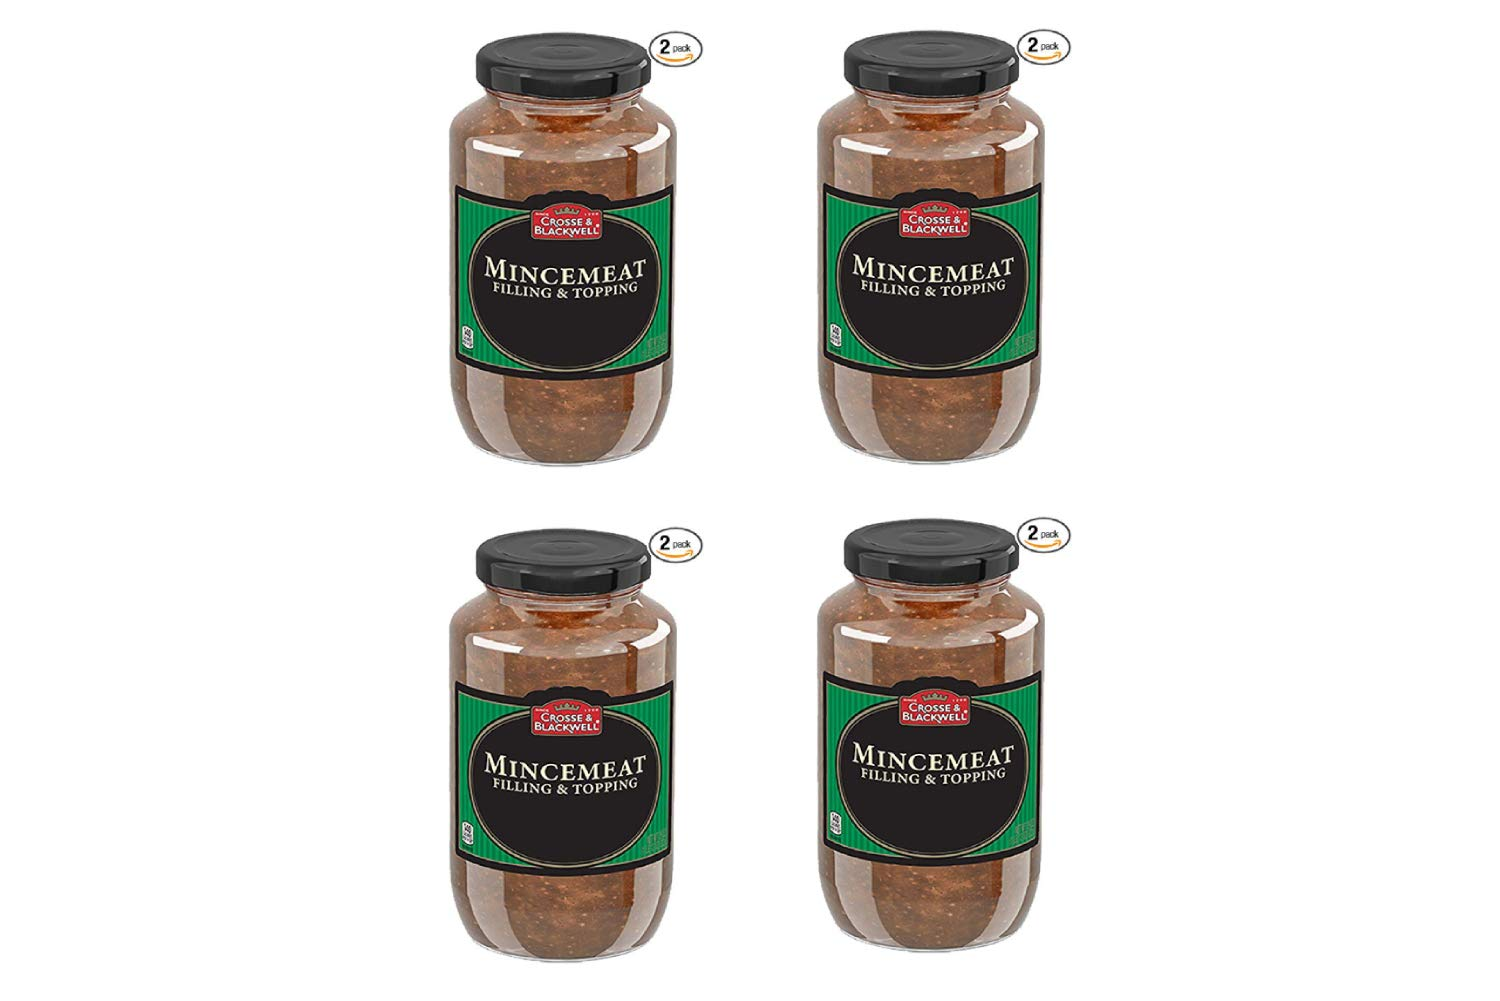 Crosse and Blackwell Mincemeat Plain 29 Ounce 2 Count (4 Pack)